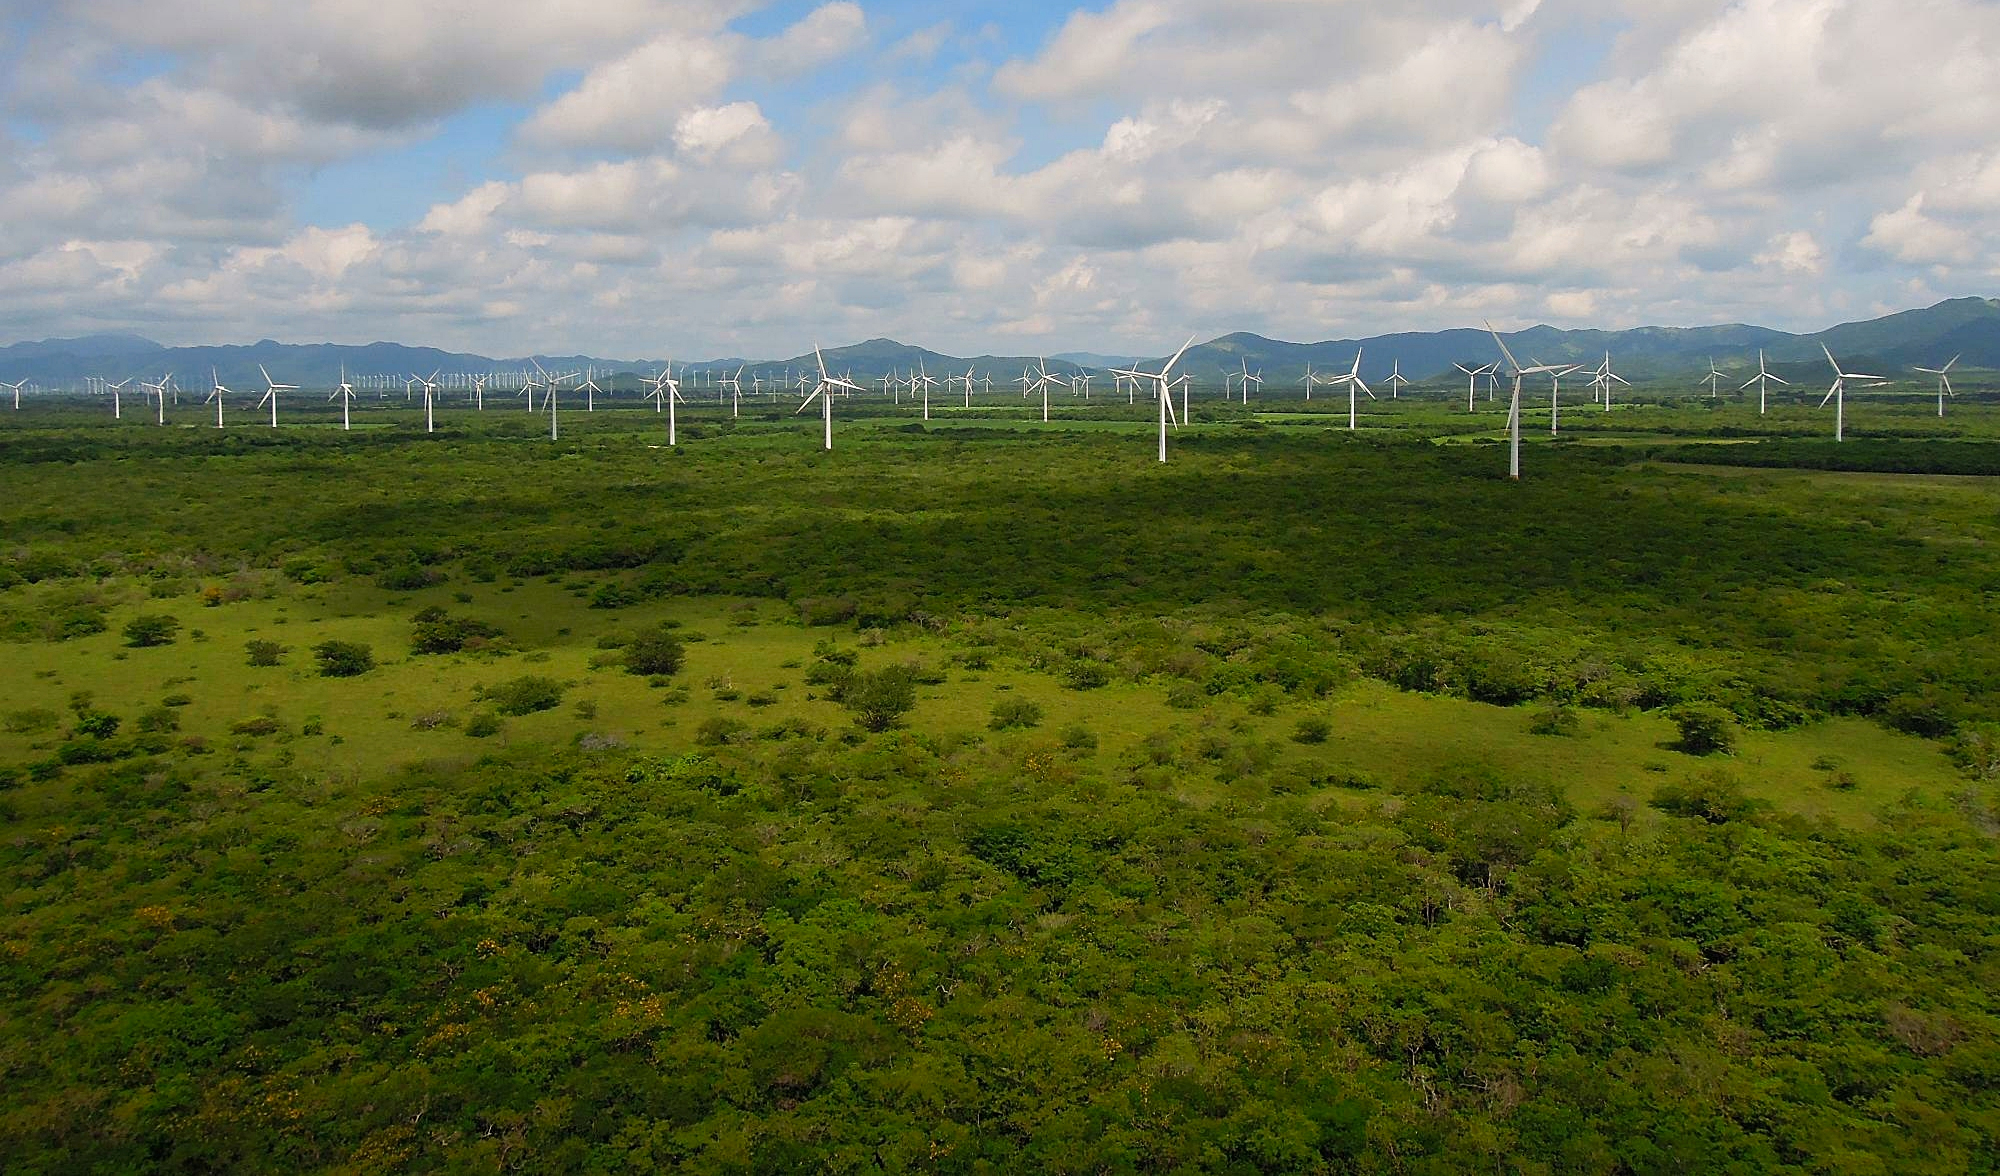 Technological Advances In Renewable Energy Reports Worldfinance Wind Power Learn Science World39s Our World Gallery Association With Iberdrola